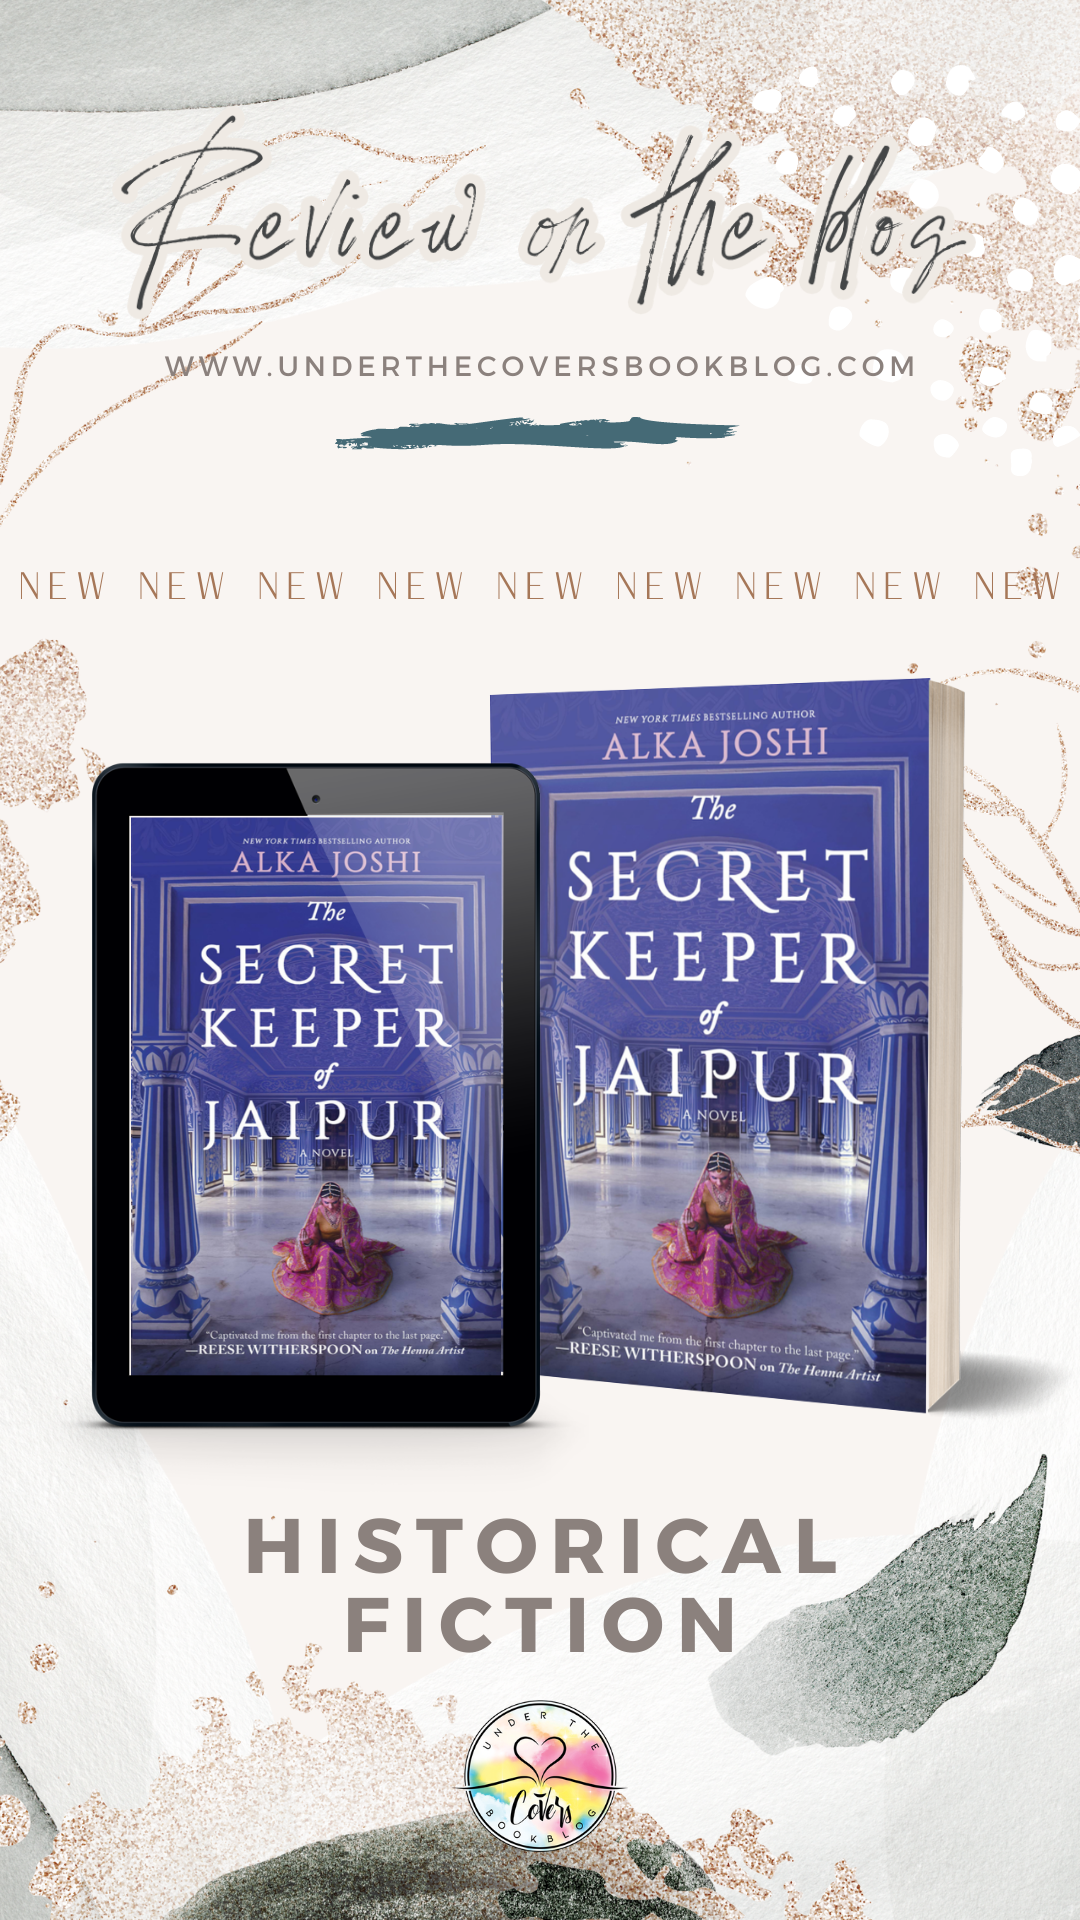 ARC Review: The Secret Keeper of Jaipur by Alka Joshi